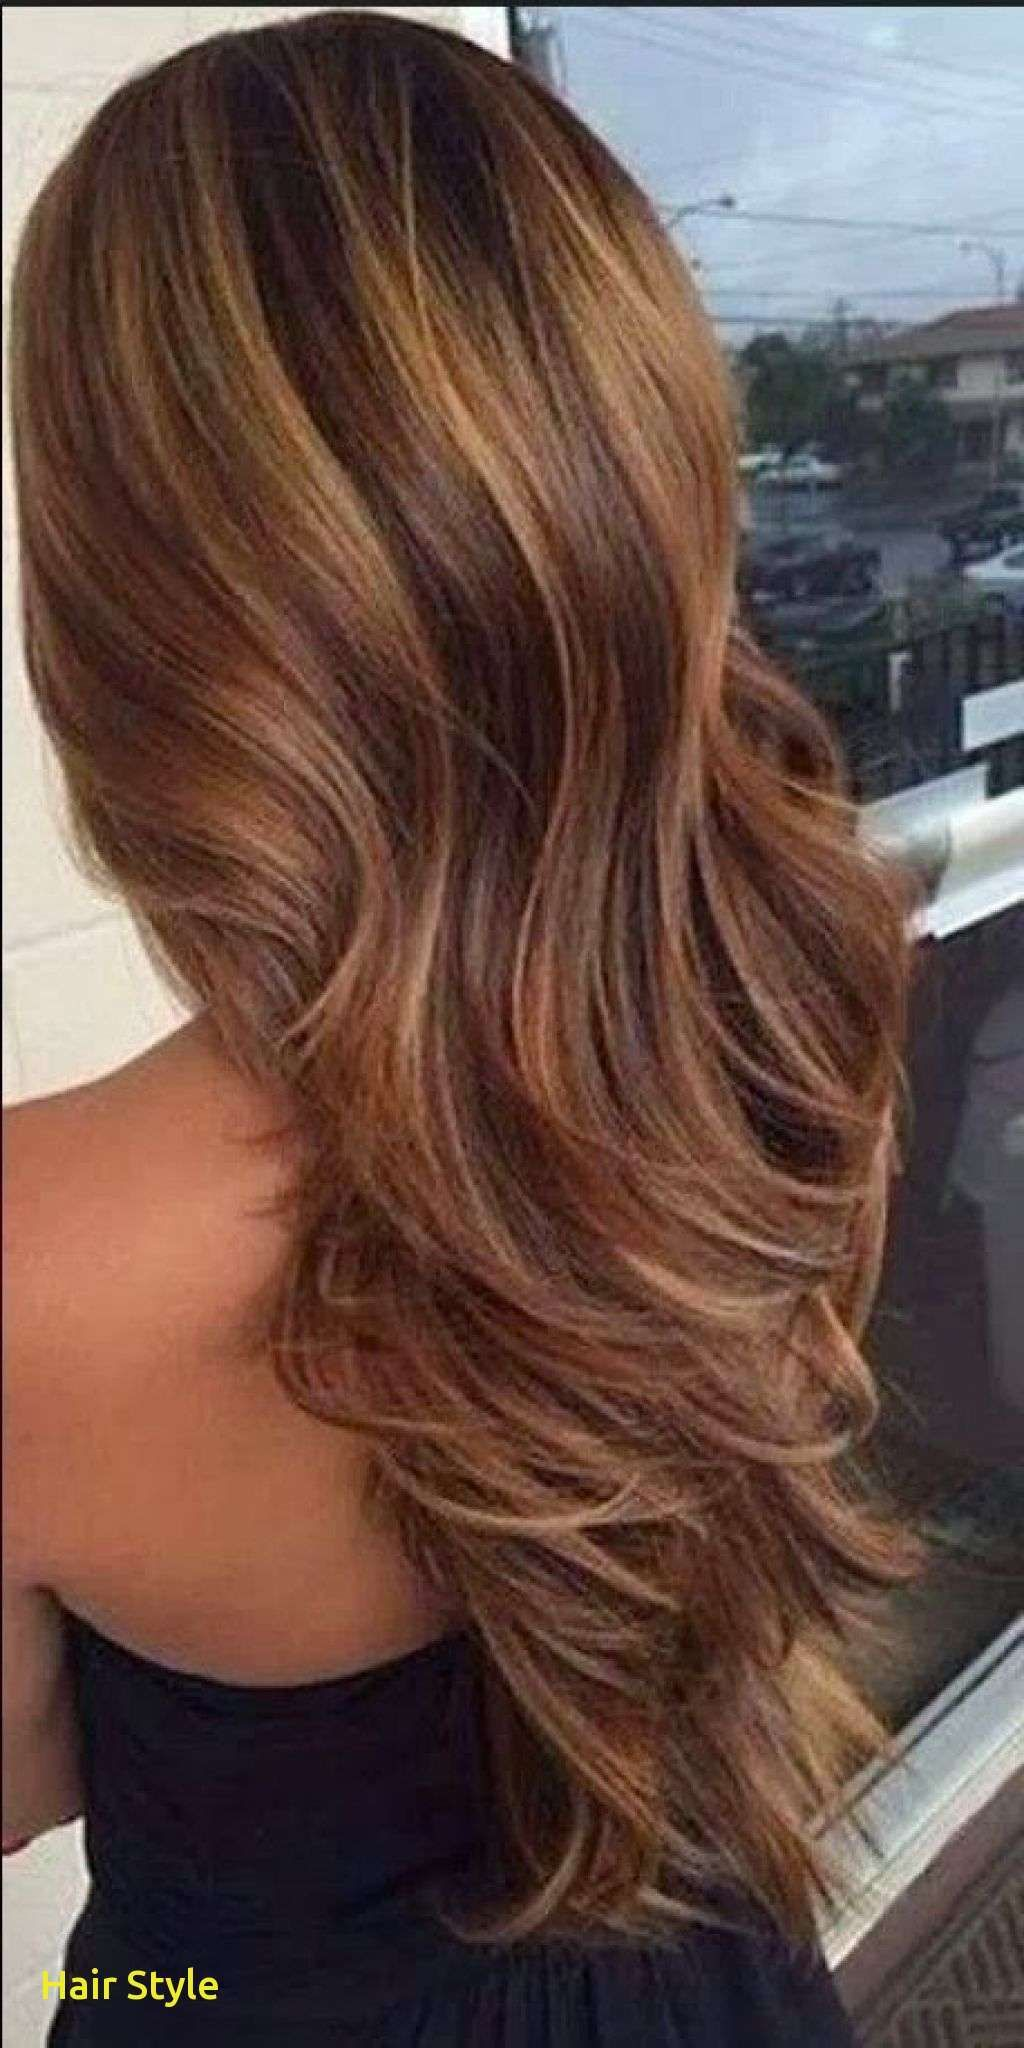 Best Of Shades Of Brown Hair New Hairstyles Styles 2019 Brown Hair Hairstyles Shades Styles In 2020 Hair Color Auburn Hair Color Caramel Brunette Hair Color